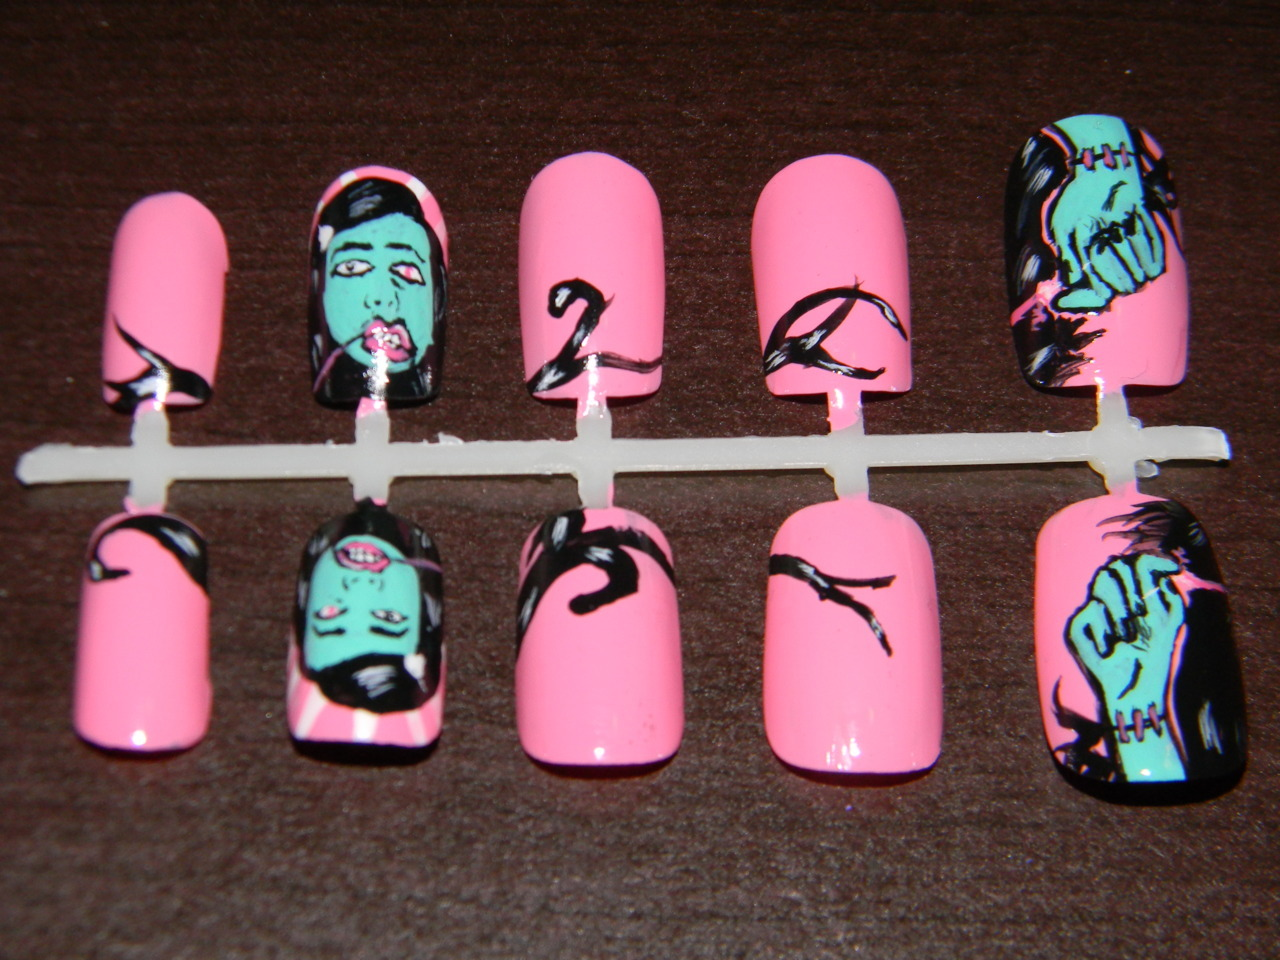 gaslight anthem nails now available on etsy!